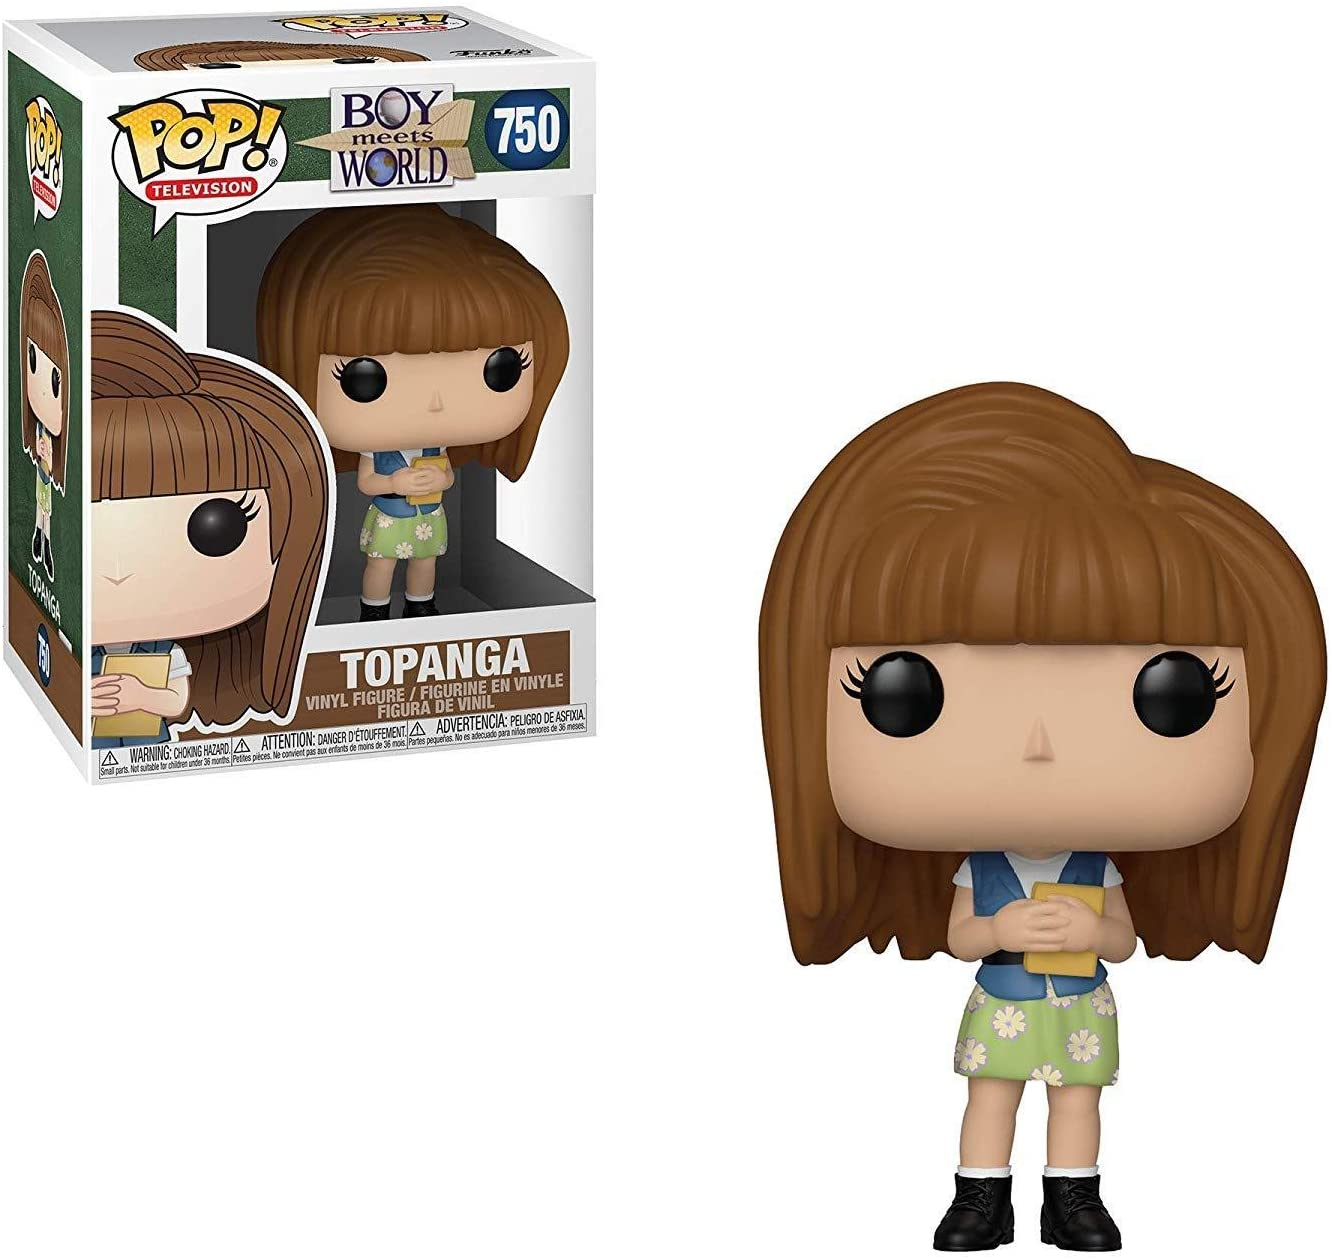 Pop! Vinyl/Boy Meets World - Topanga [Toy]